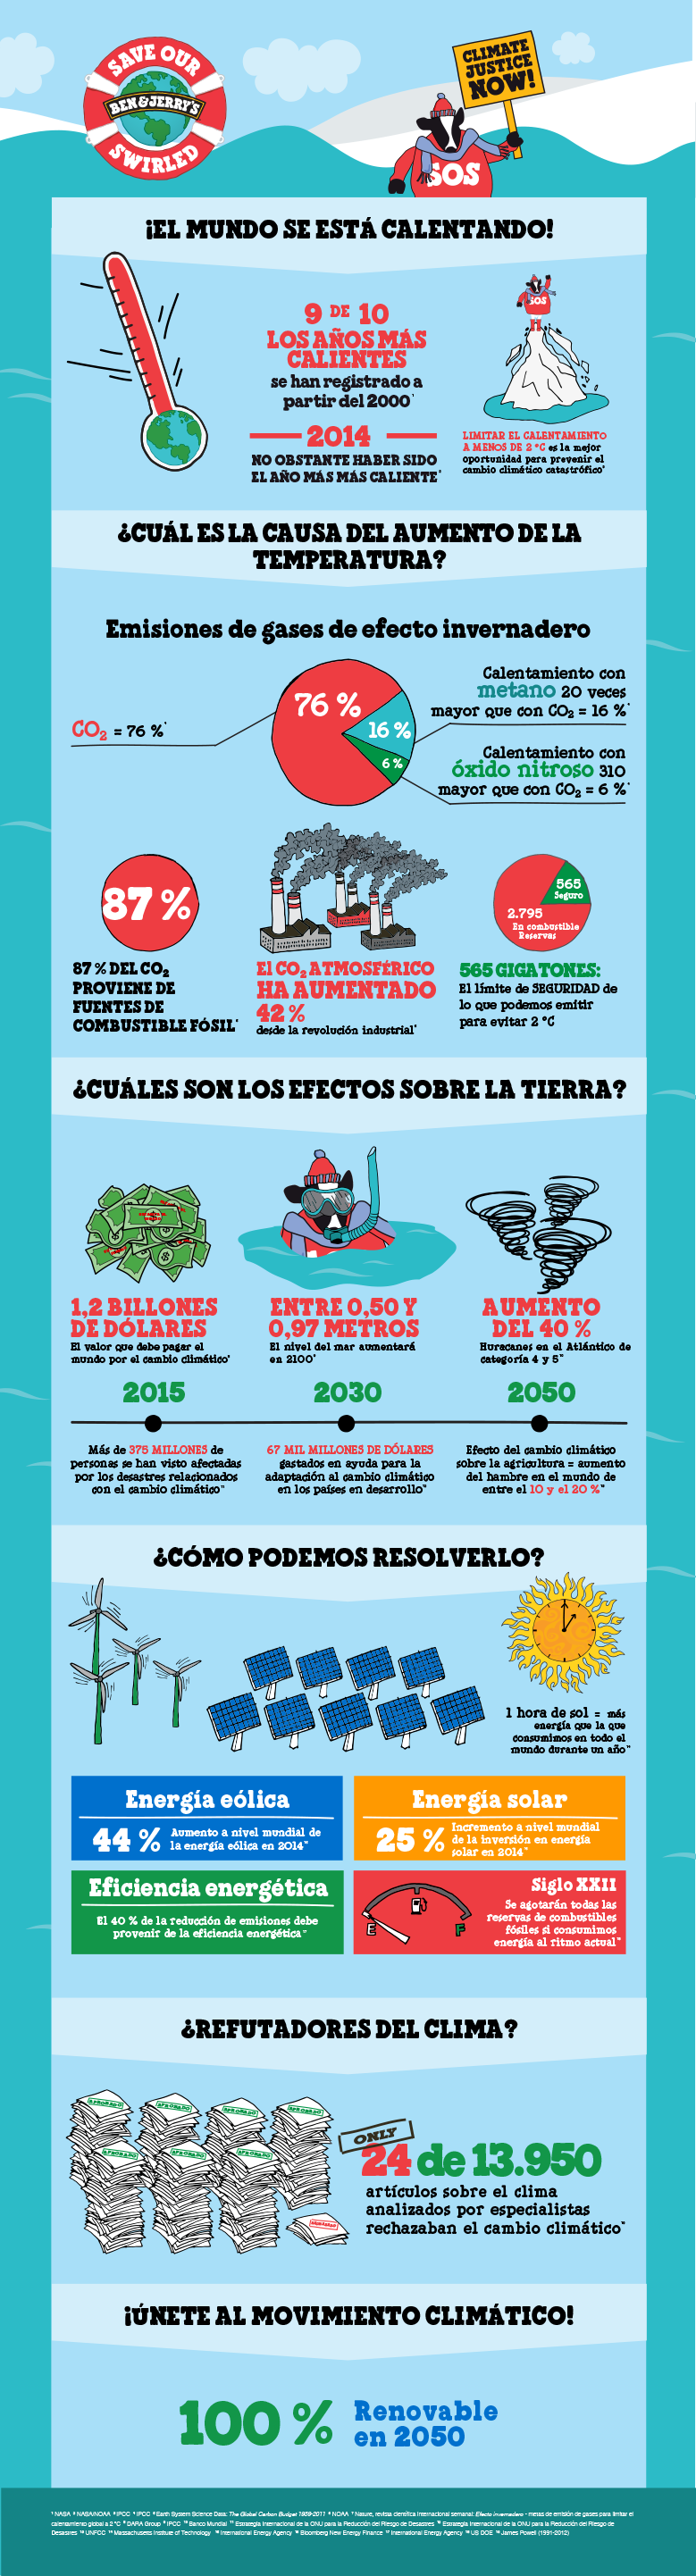 BJ_ClimateChange_Infographic_Spanish-(Mexico)_TypeSet.png